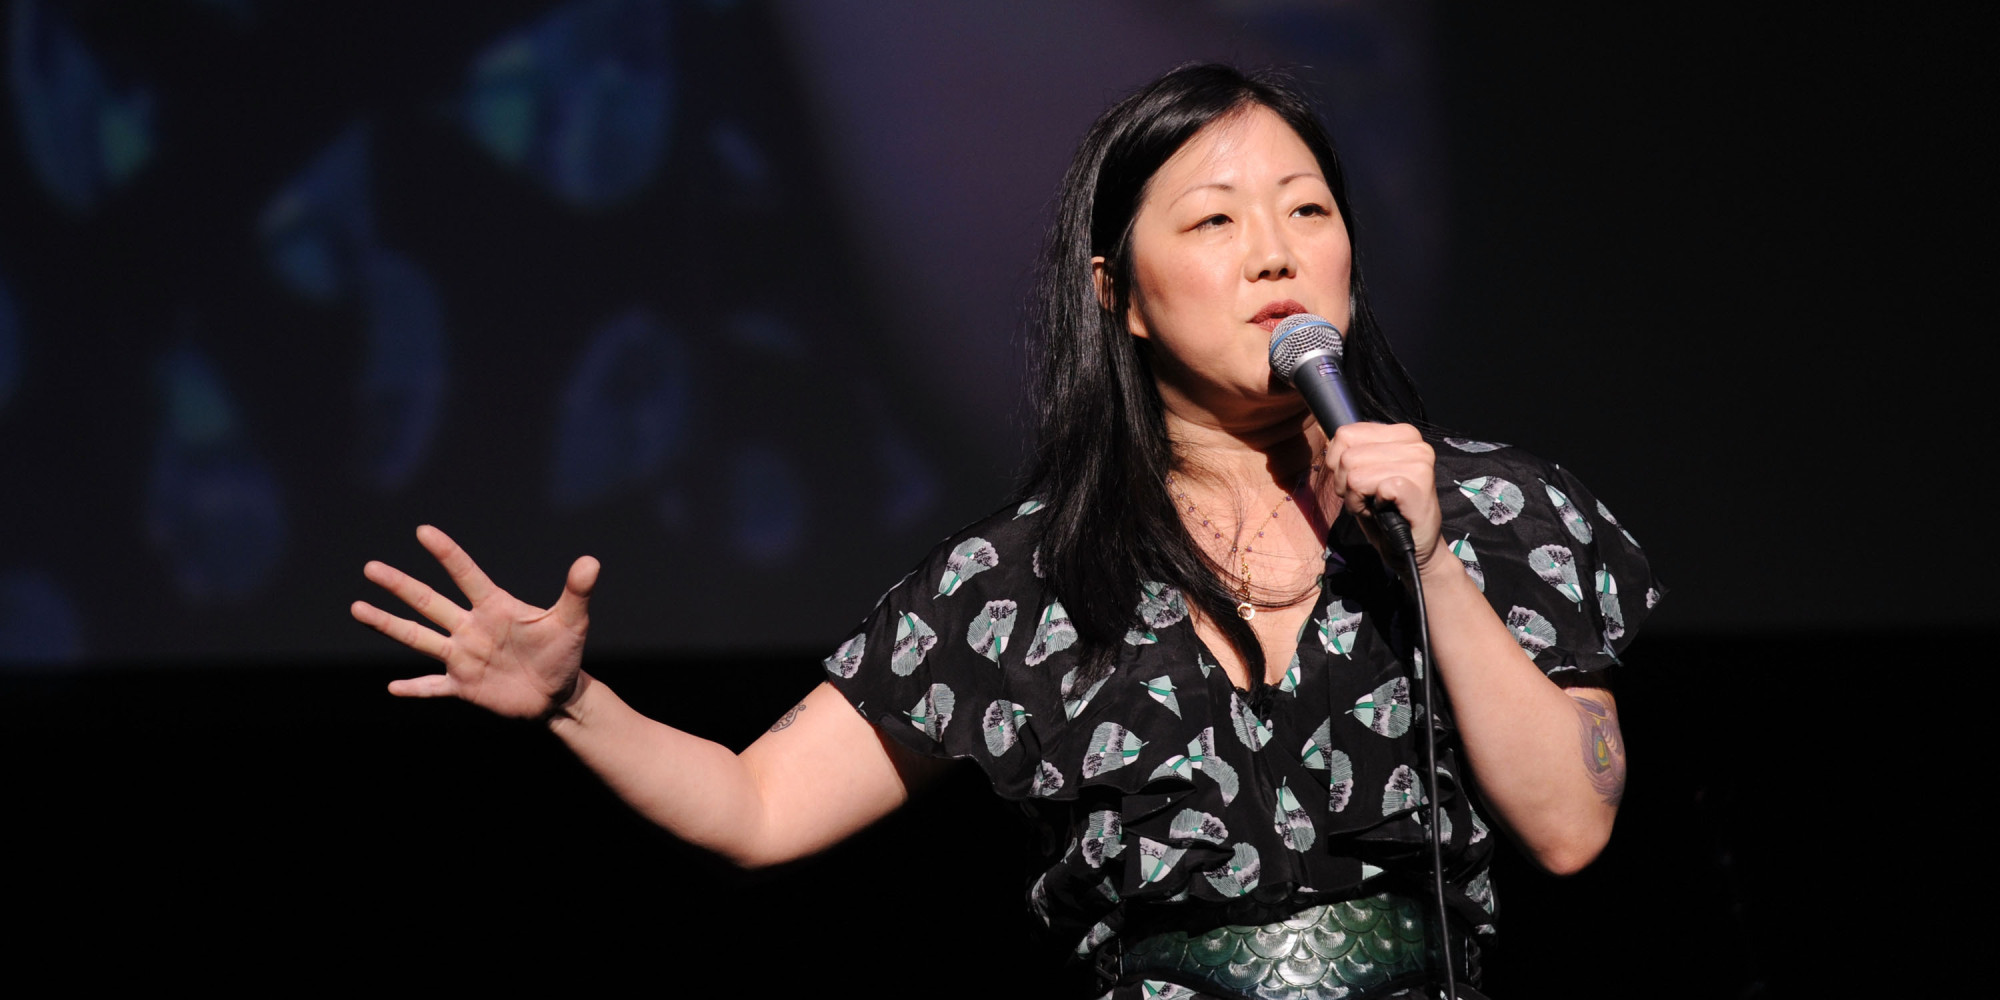 margaret cho beautifulmargaret cho tilda swinton, margaret cho stand up, margaret cho books, margaret cho young, margaret cho imdb, margaret cho fat, margaret cho john travolta, margaret cho husband al ridenour, margaret cho beautiful, margaret cho tattoos